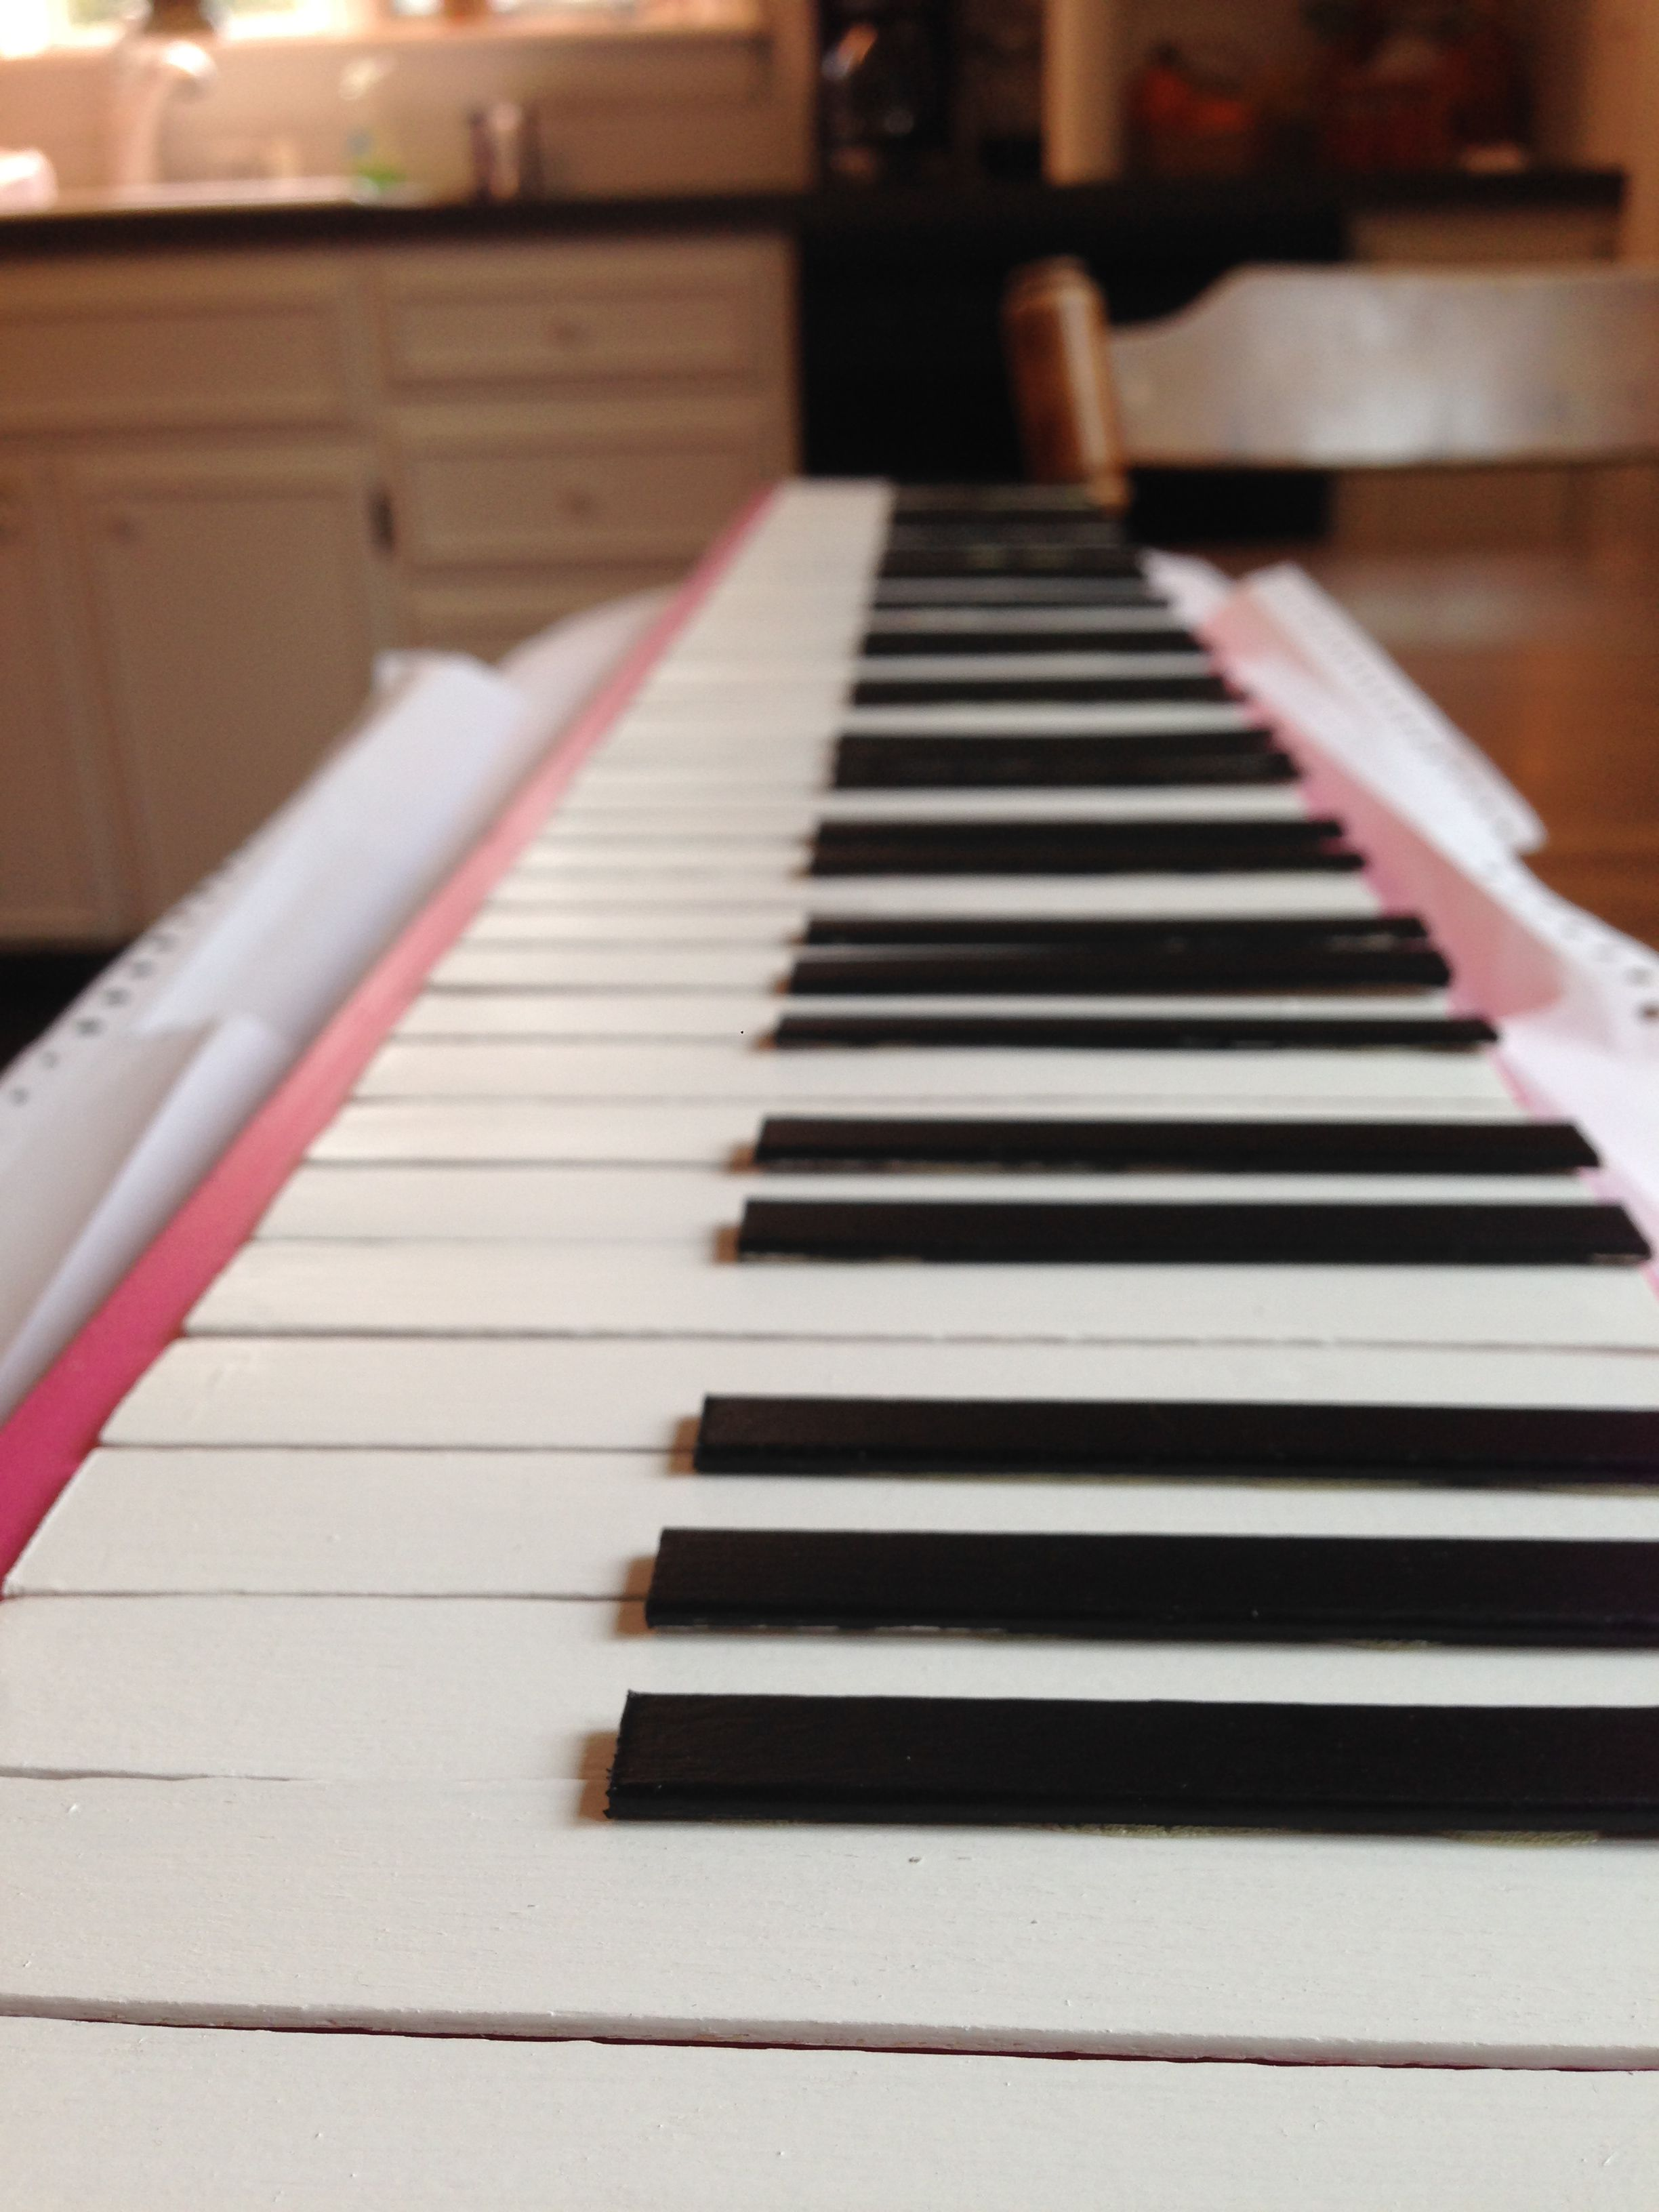 Popsicle Sticks And Tongue Depressors Used To Make Piano Keys